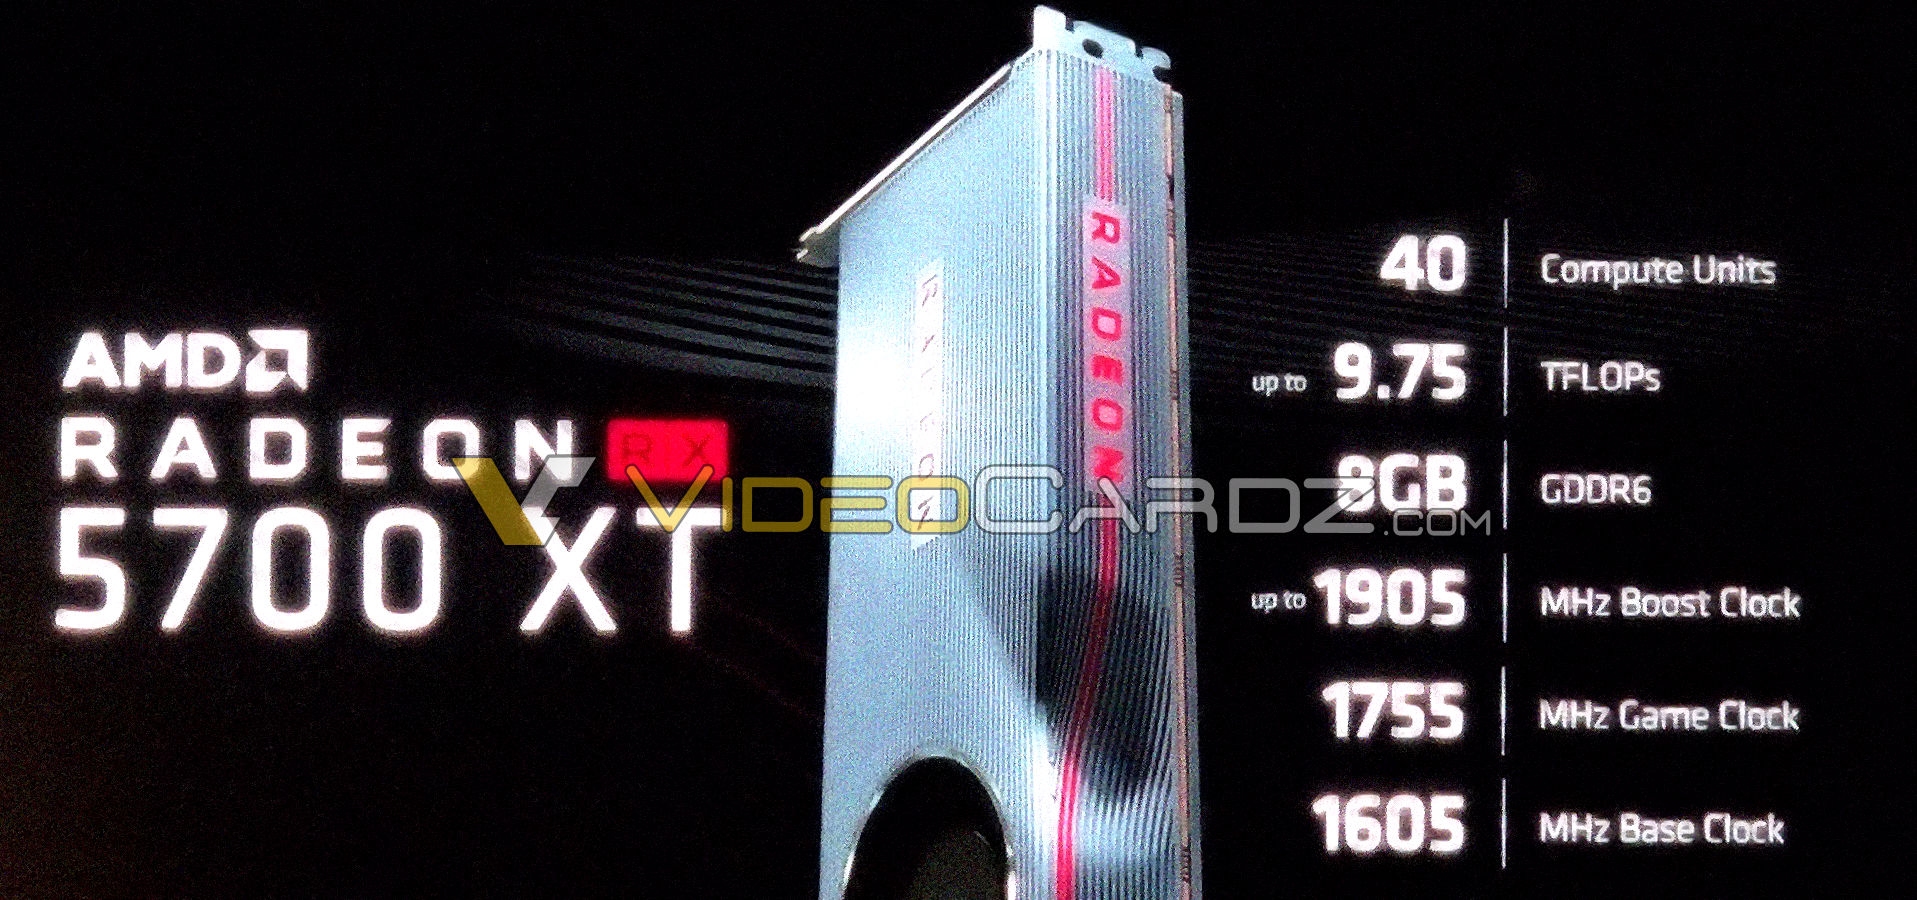 AMD-Radeon-RX-5700XT-Navi-Specifications.jpg